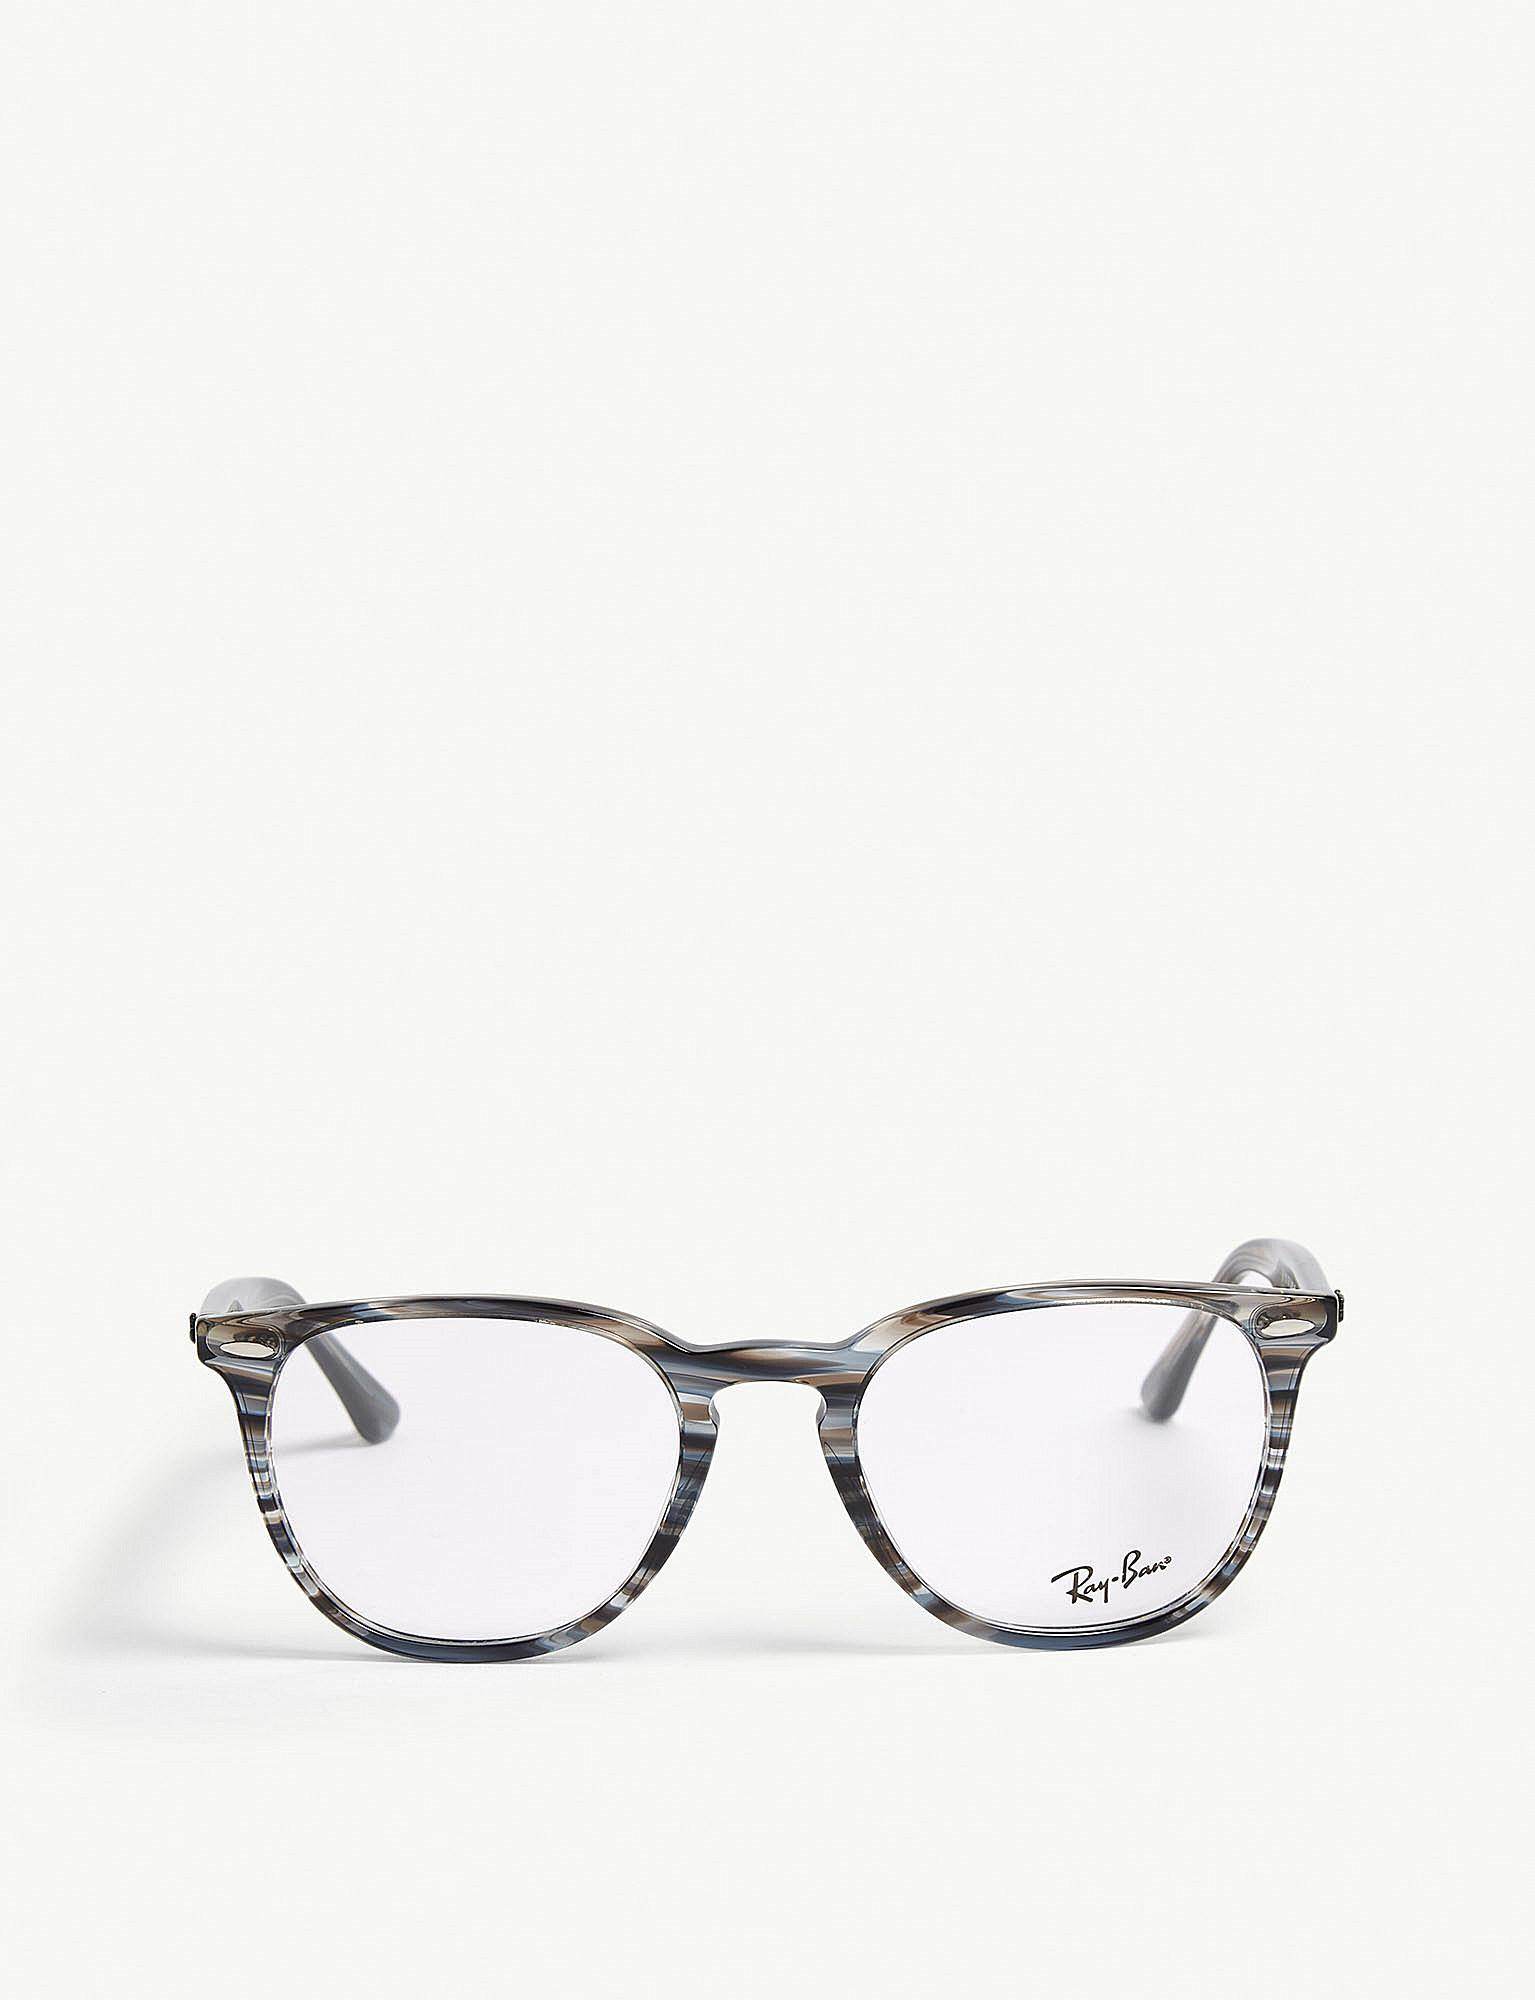 57d44124f9 Ray-Ban Rb7159 Square-frame Optical Glasses in Blue - Lyst